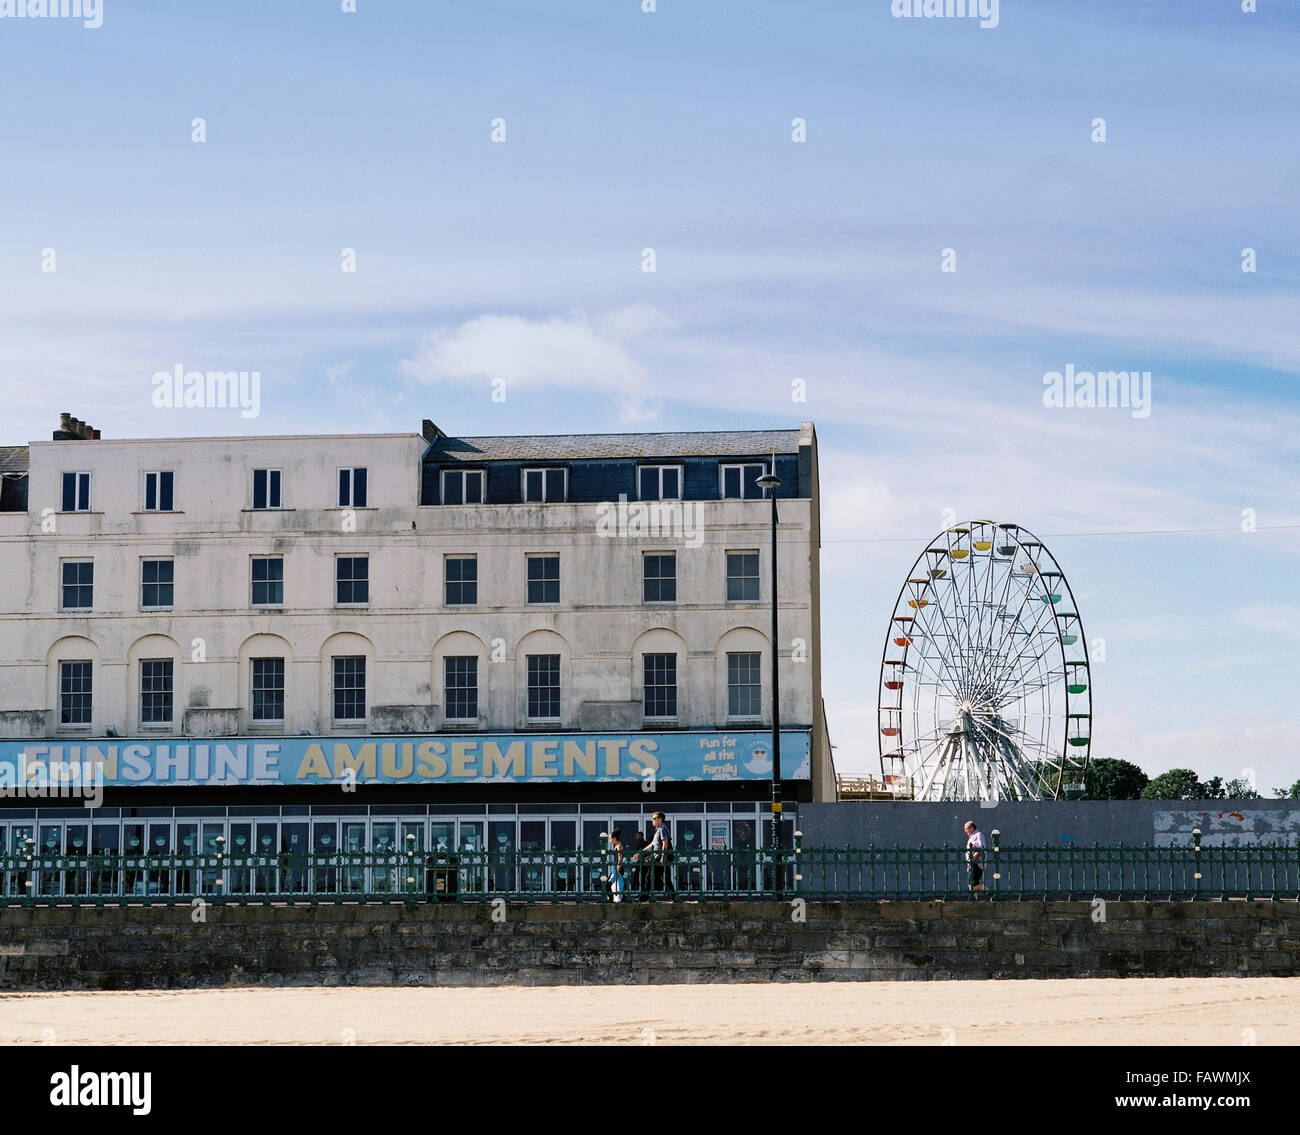 Amusements in Margate Kent, with the Dreamland Ferris whel. - Stock Image